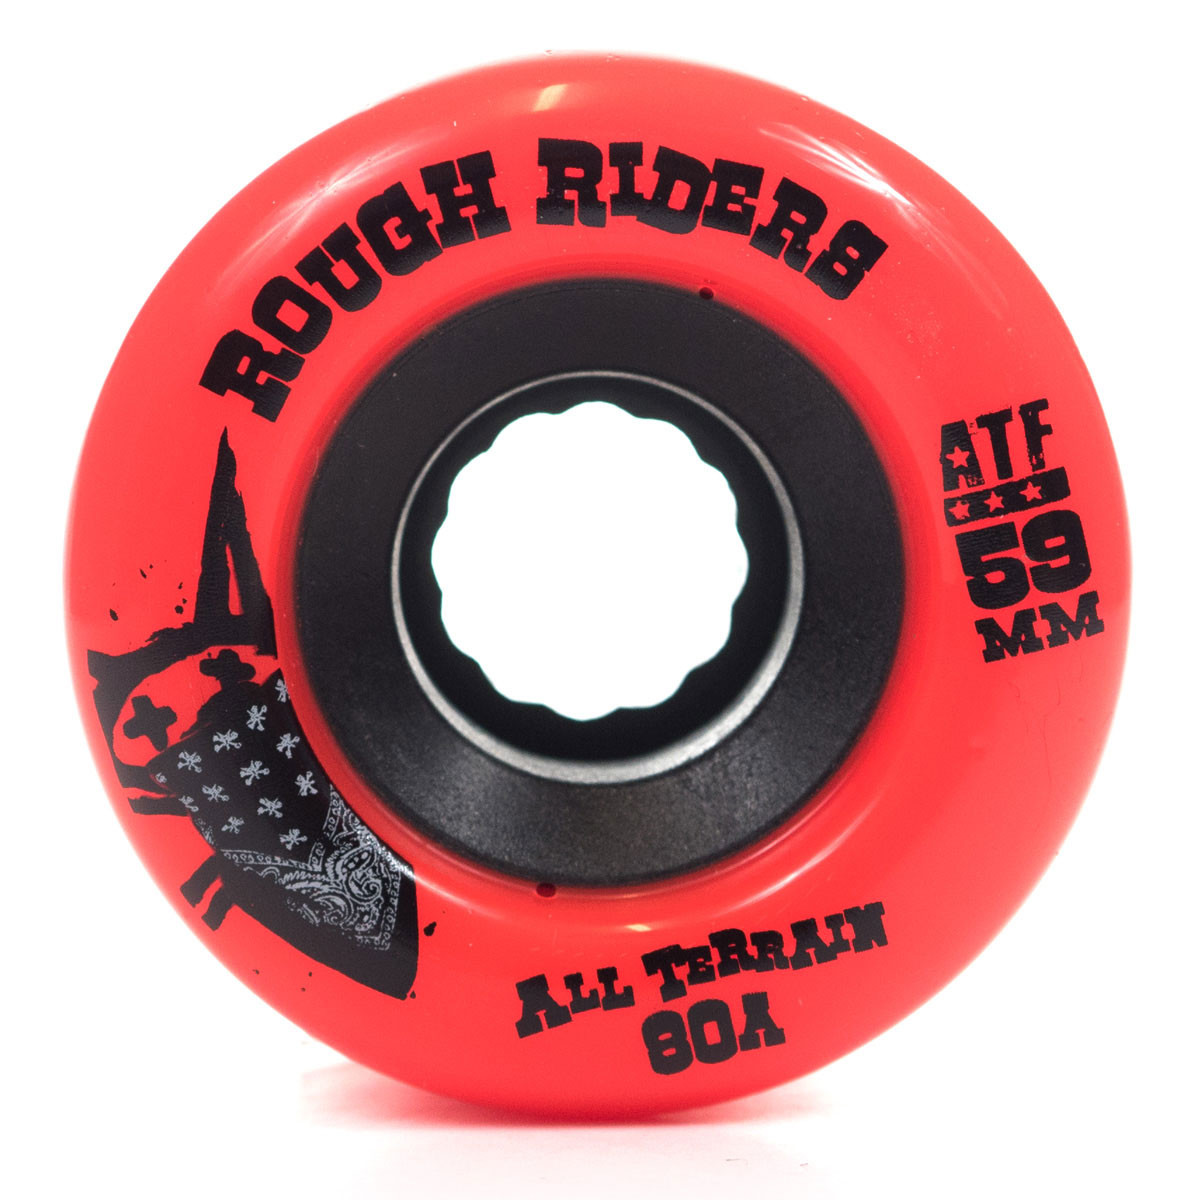 Bones Skateboard Wheels Rough Riders Red 59MM 80B ATF FREE POST